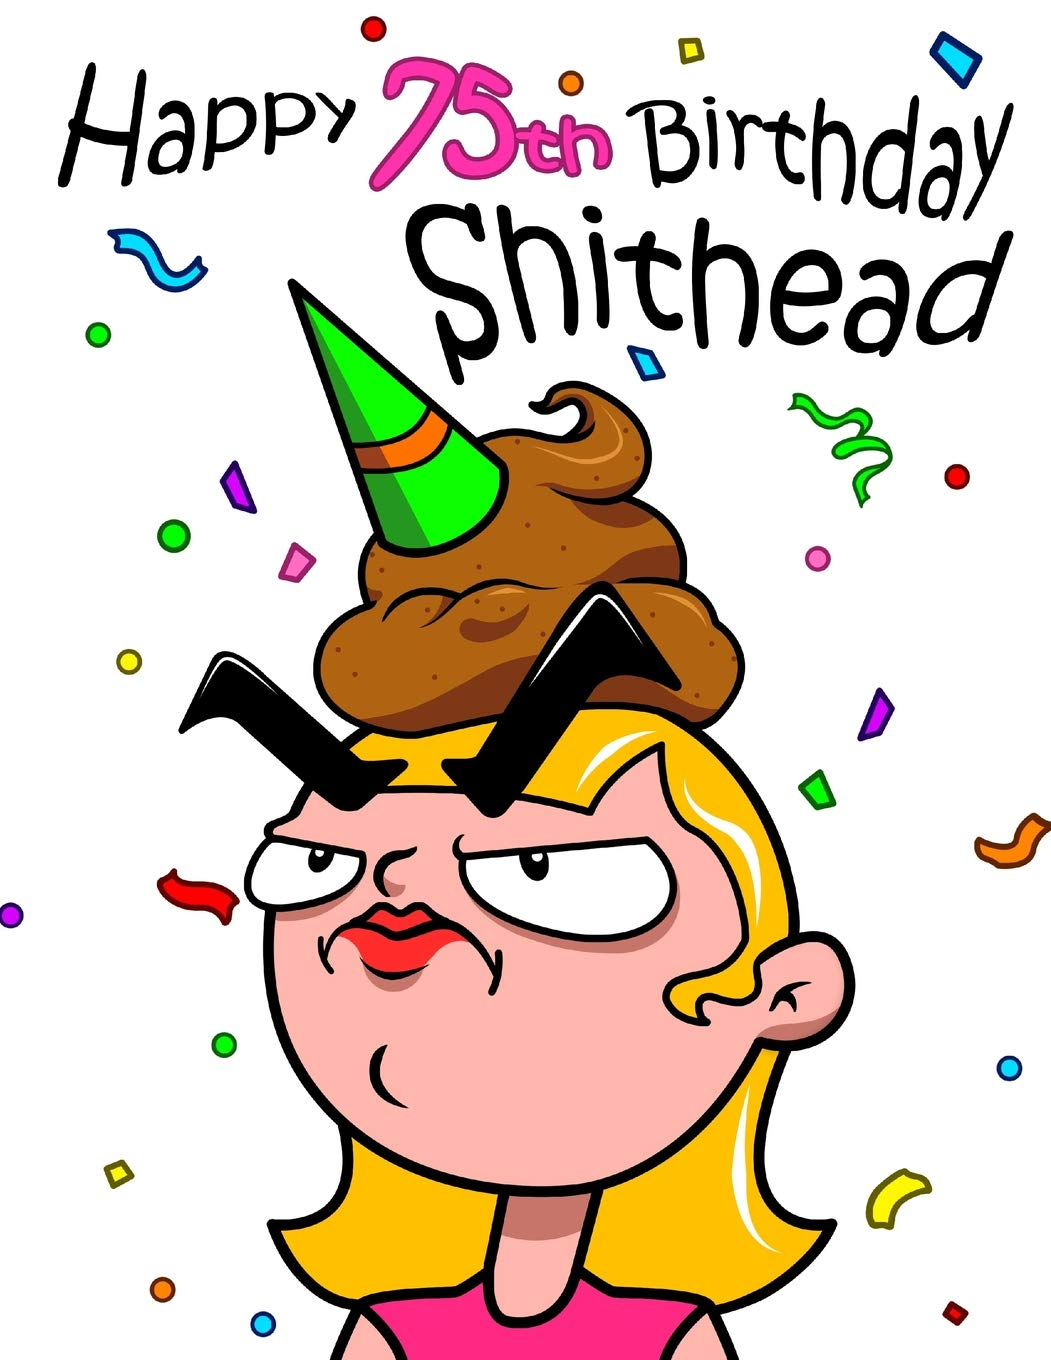 Happy 75th Birthday Shithead Forget The Card And Get This